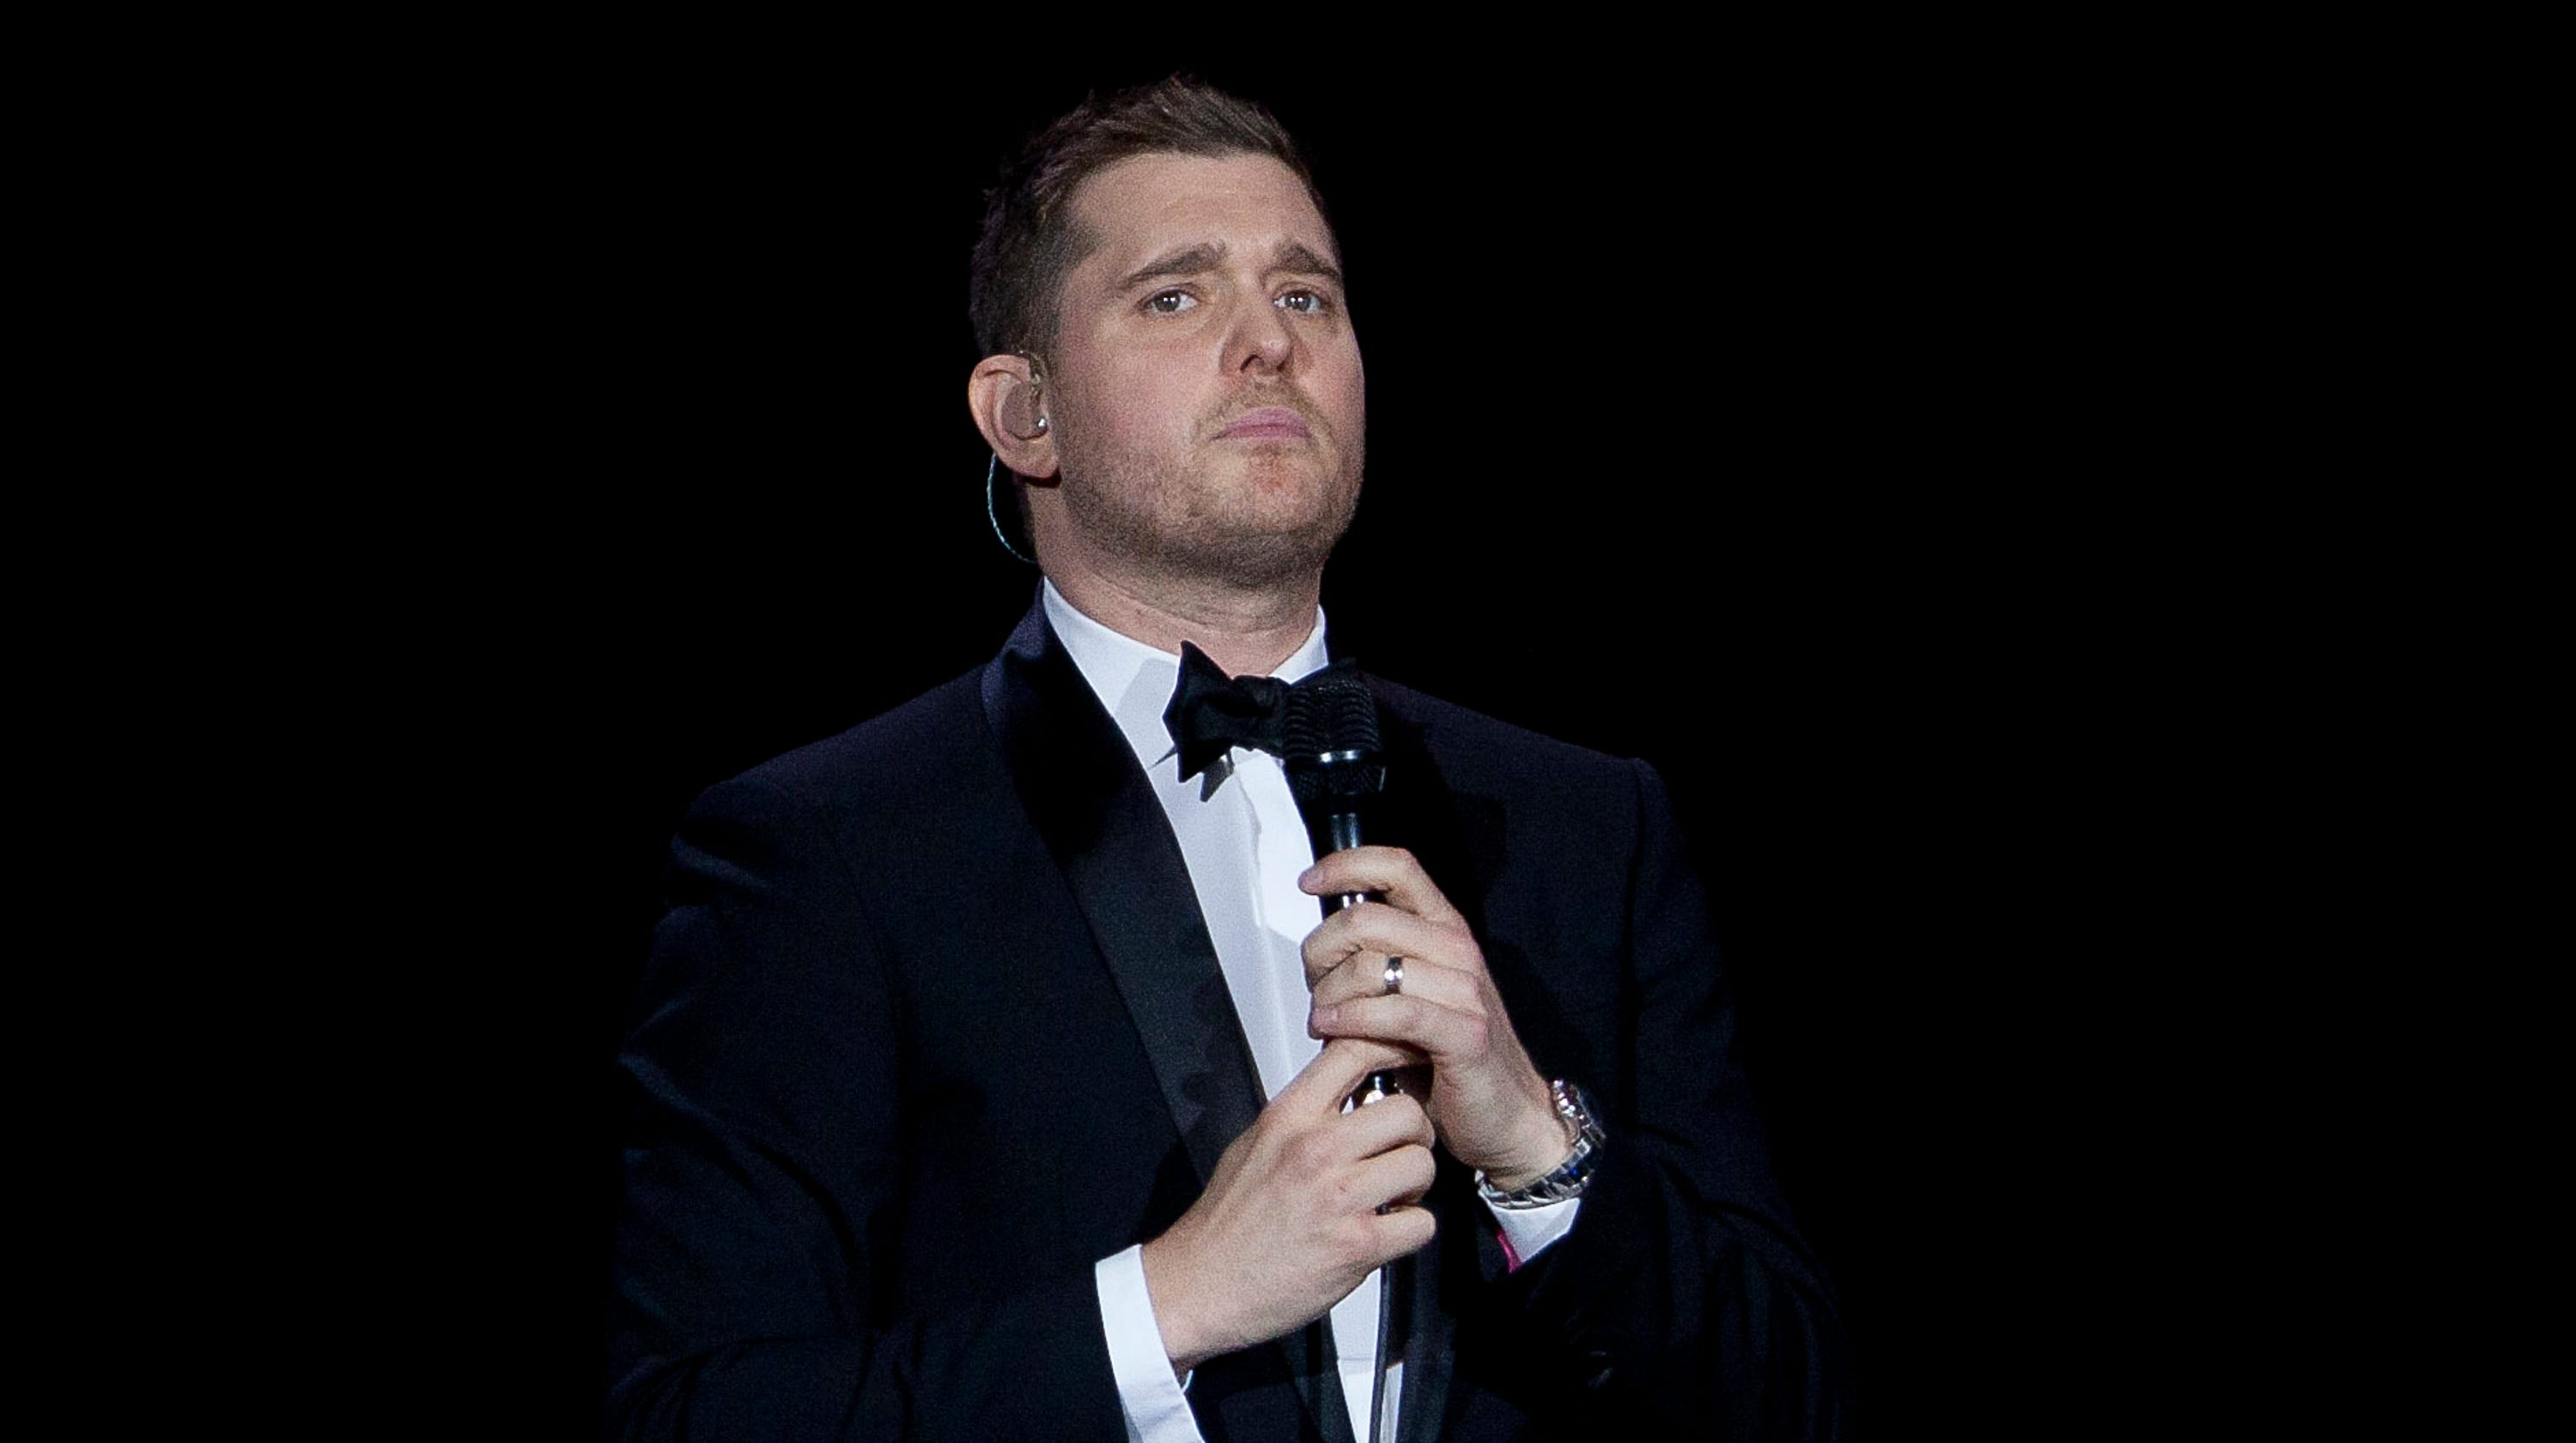 michael buble gets emotional talking about son s battle with cancer